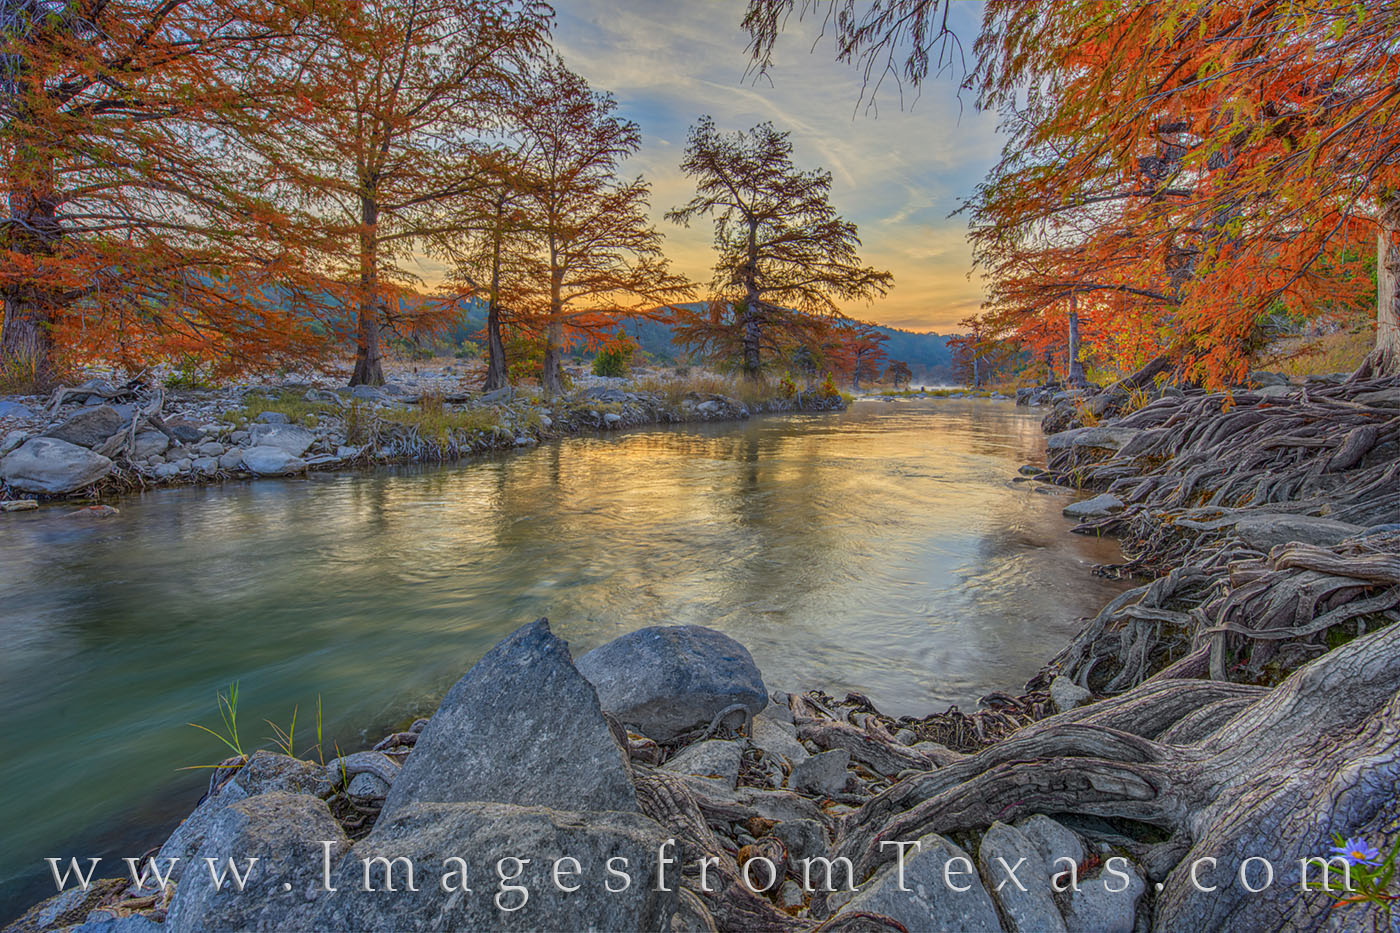 pedernales river, pedernales, fall, autumn, november, morning, sunrise, wildflower, cypress, hill country, solitude, photo